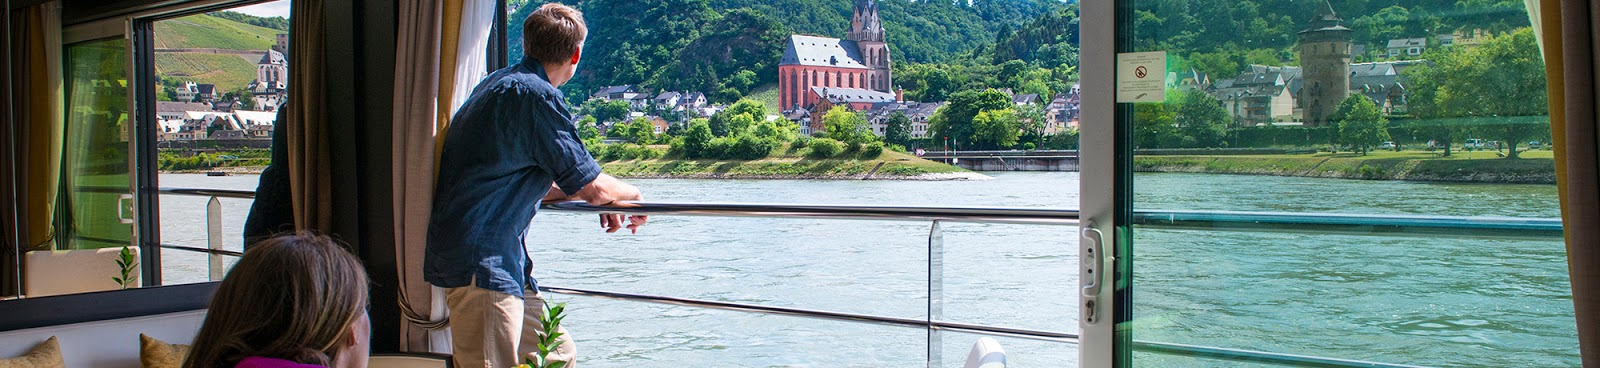 Discover cultural exploration on board Avalon Waterways. Photo: © Avalon Waterways. Unauthorized use is prohibited.